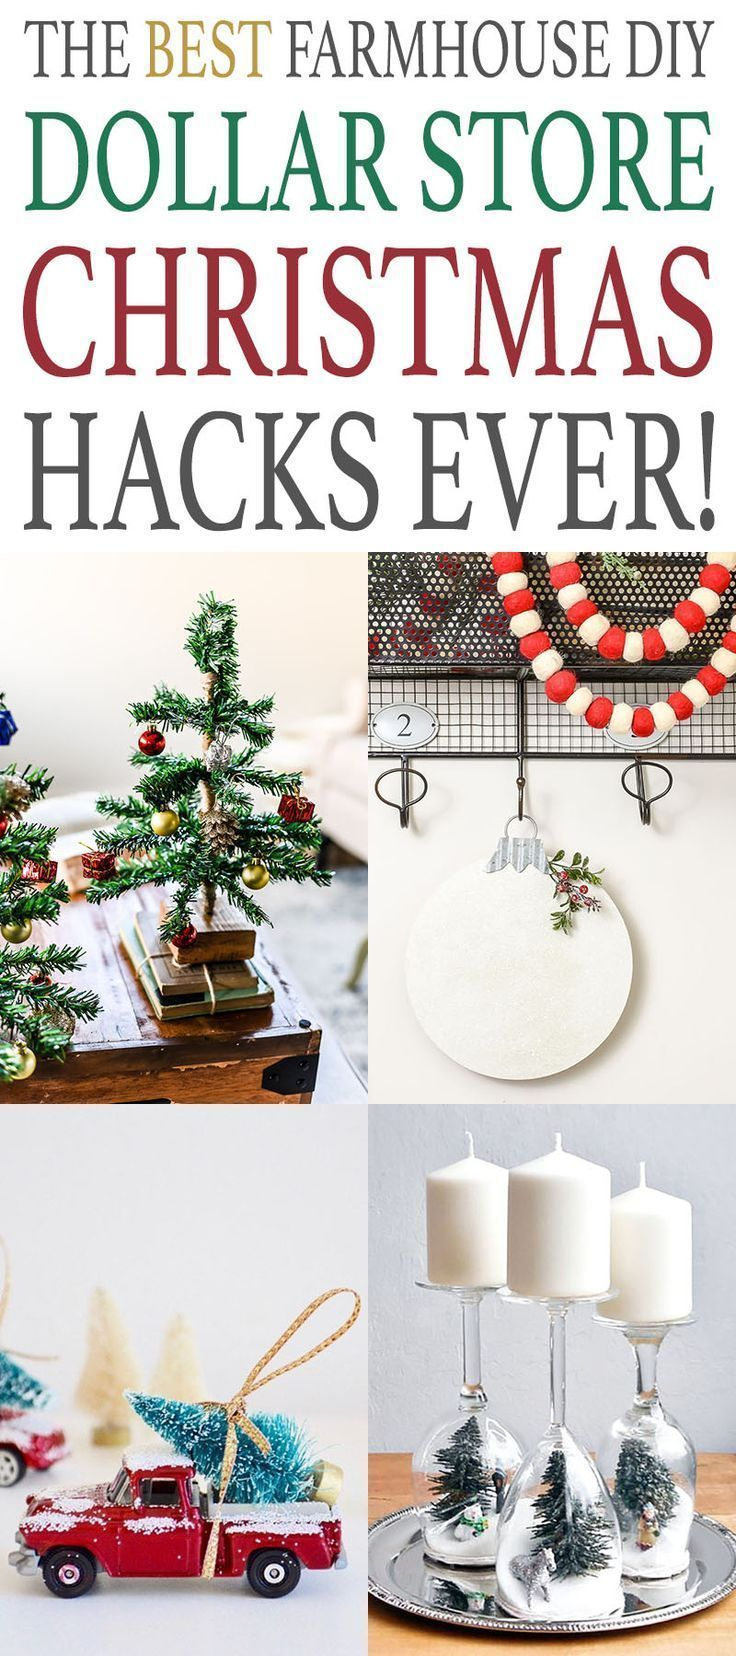 The Best Farmhouse DIY Dollar Store Christmas Hacks Ever Its never too early to start planning what you will be making for the Christmas and Holiday Season So check out t...